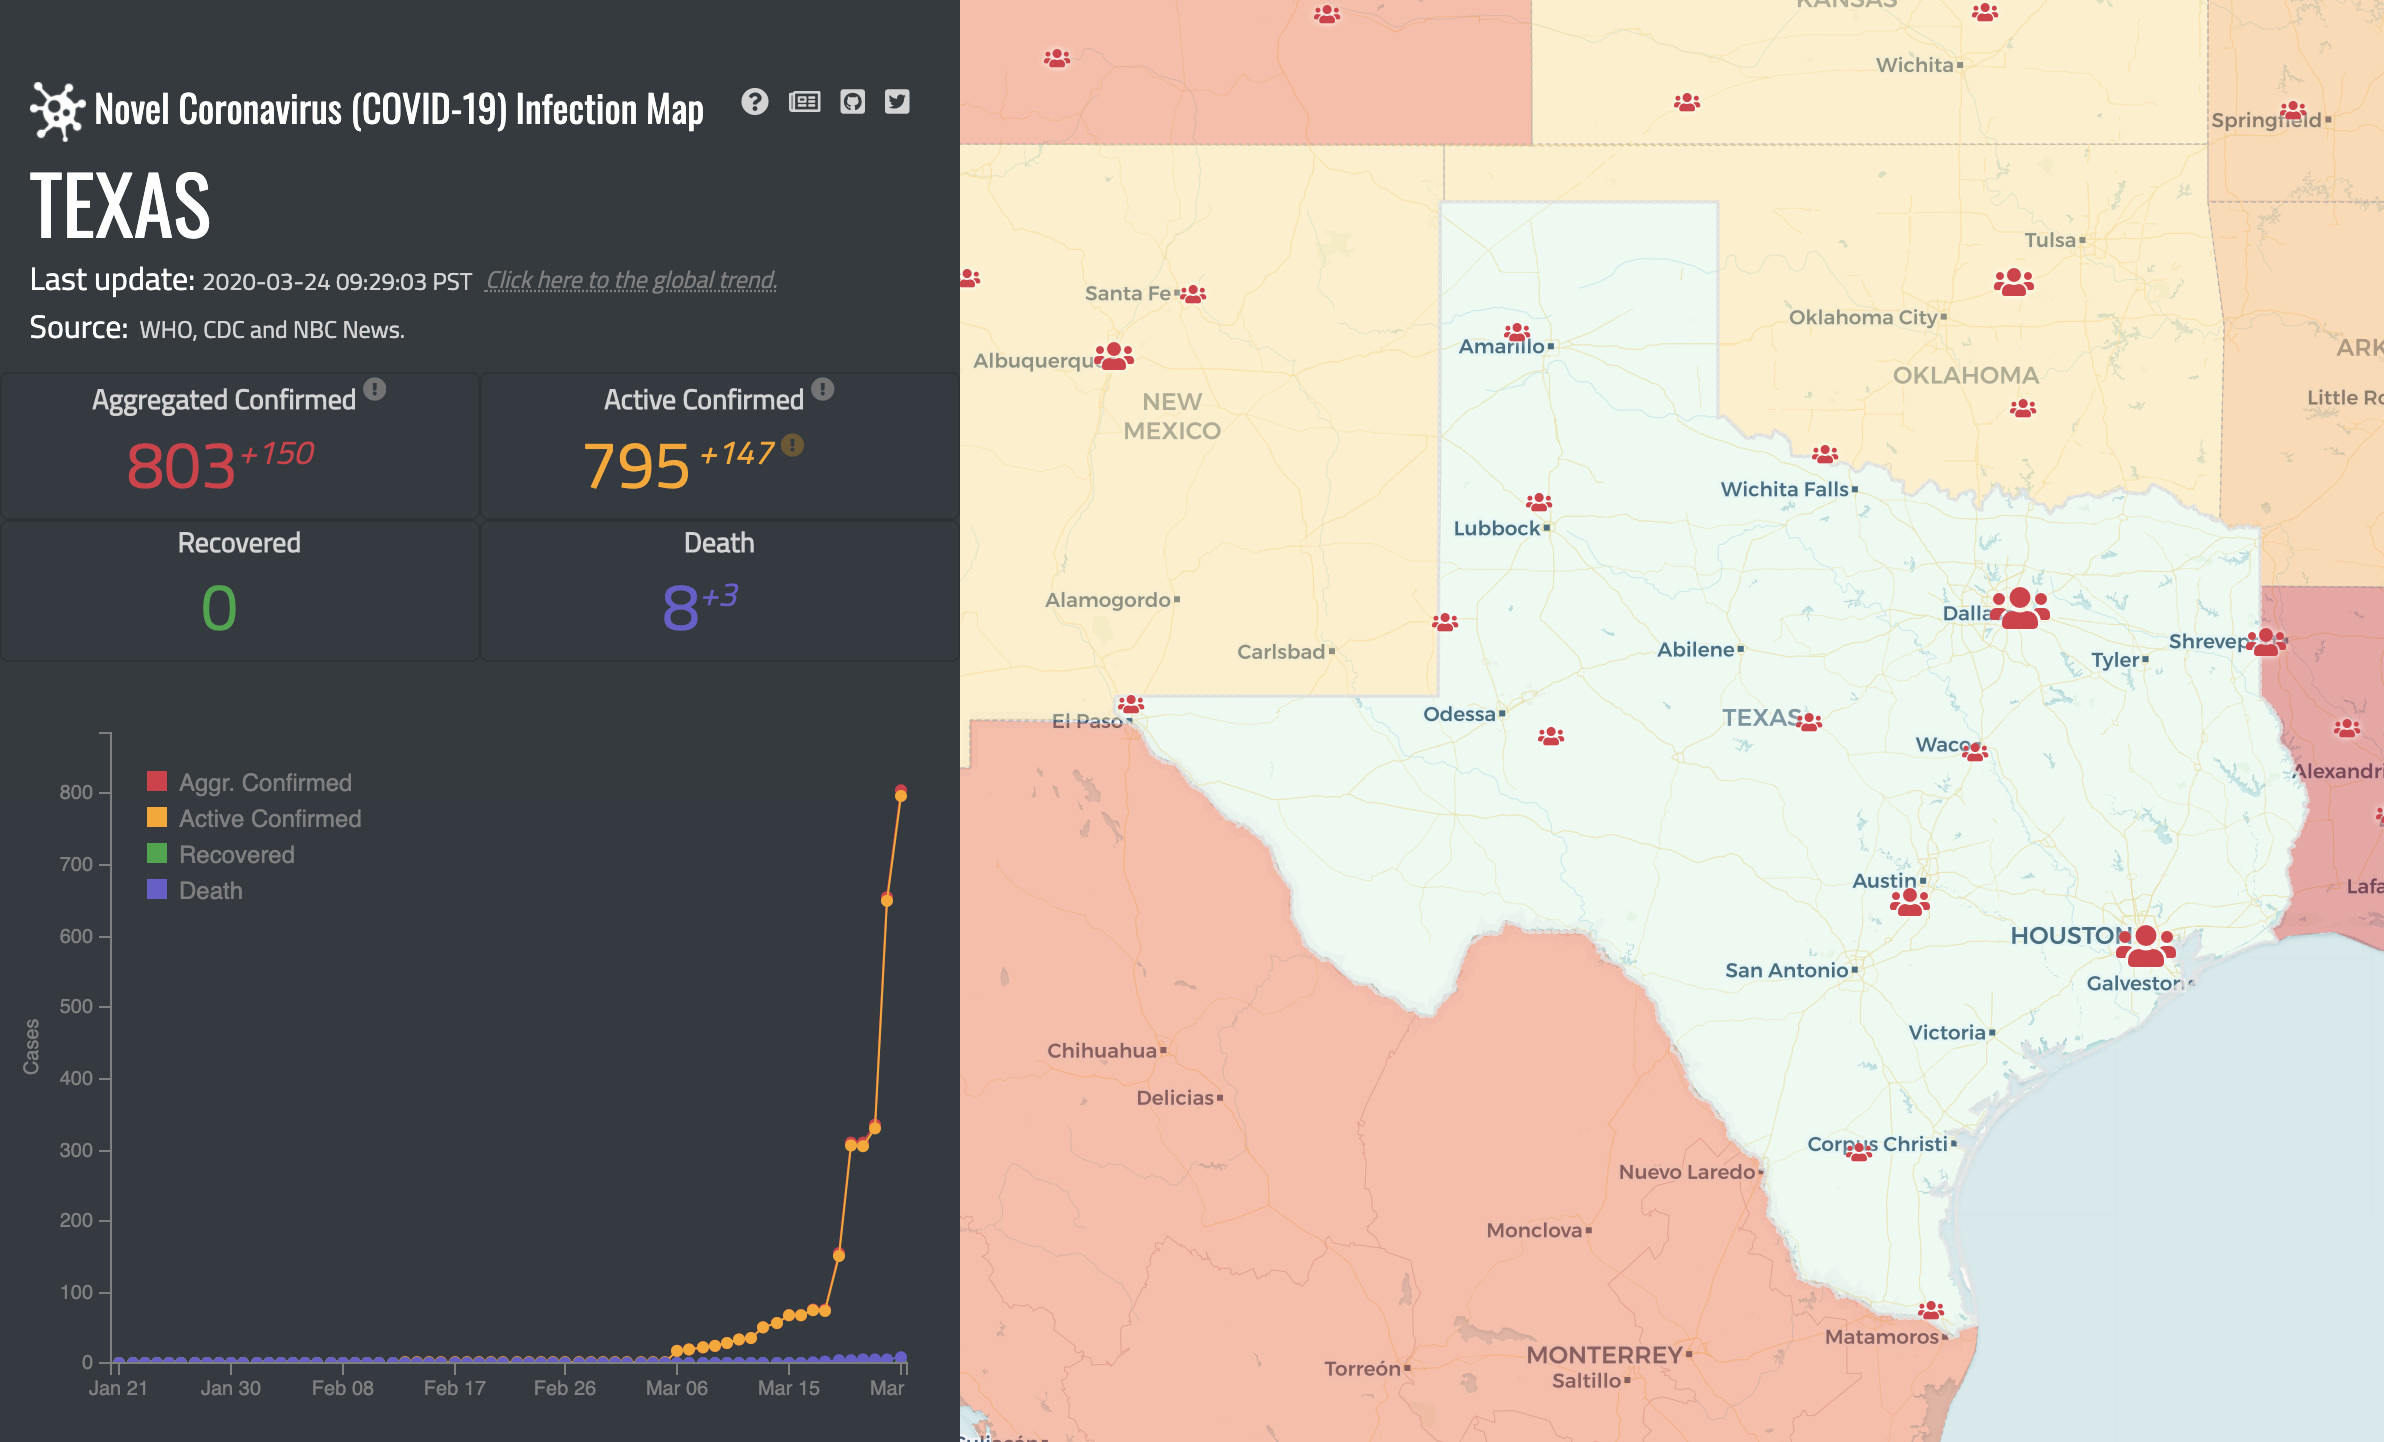 CoronaVirus COVID-19 map of Texas